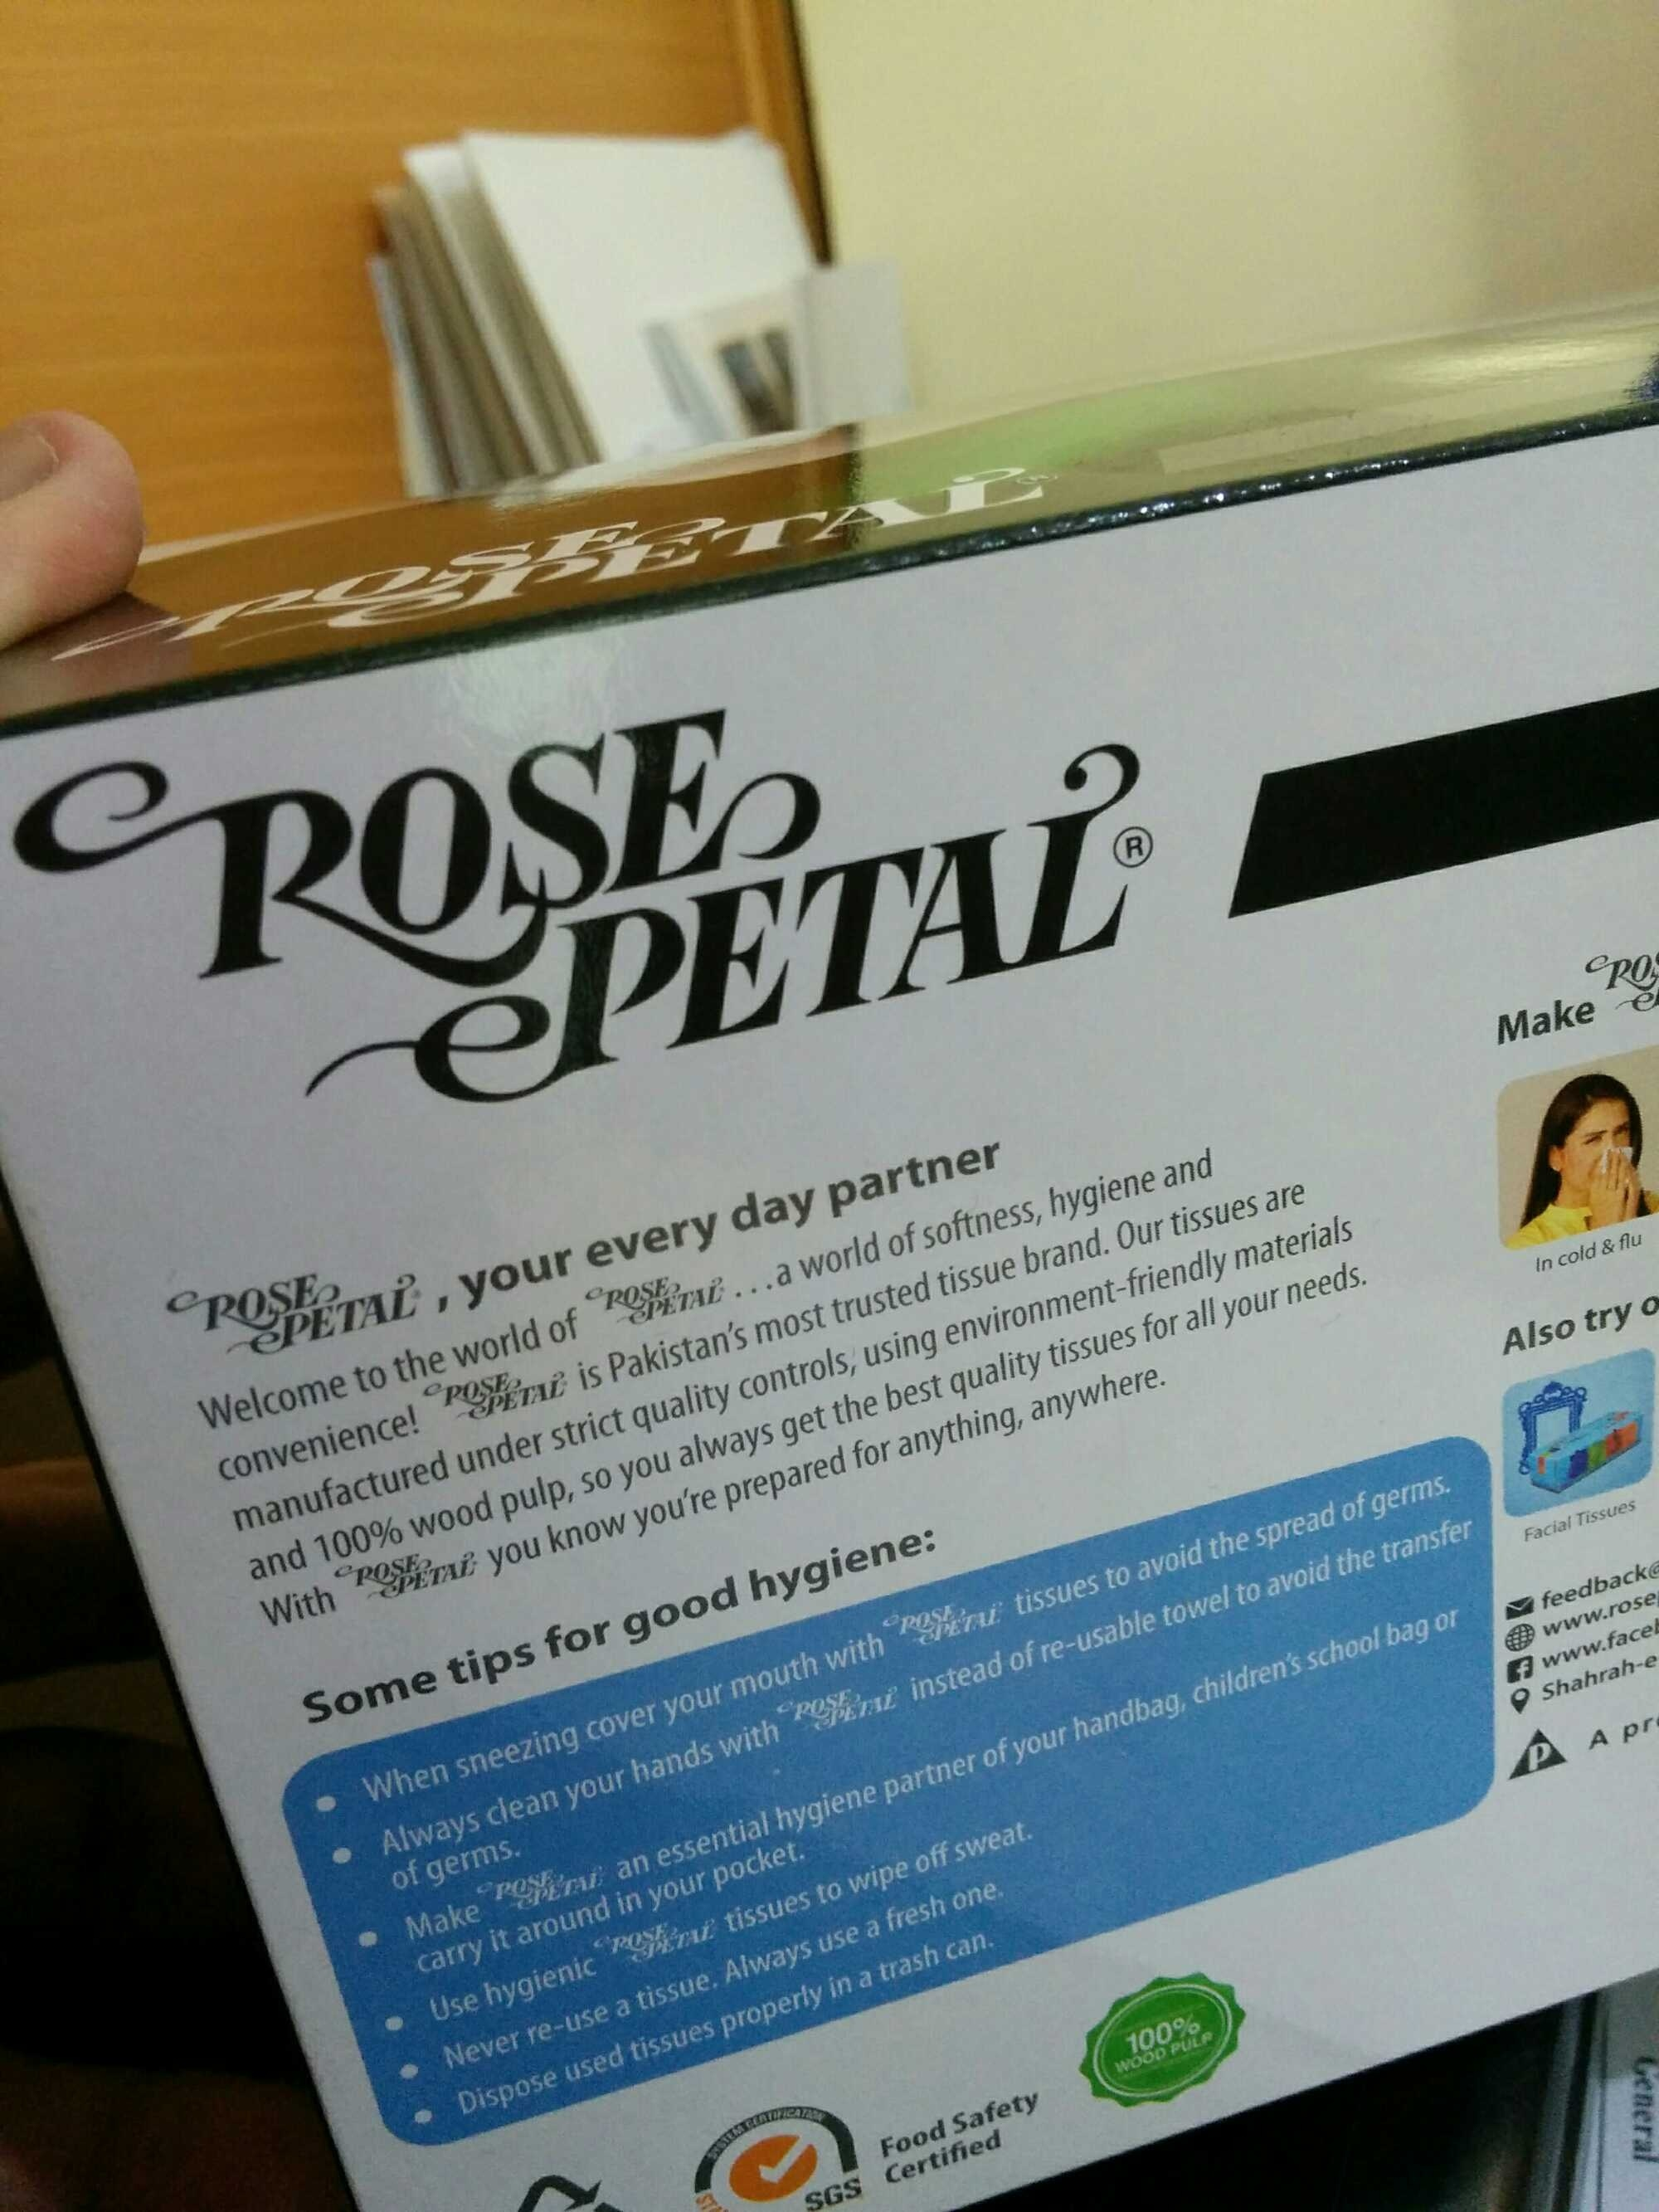 Rose ePetal - Product